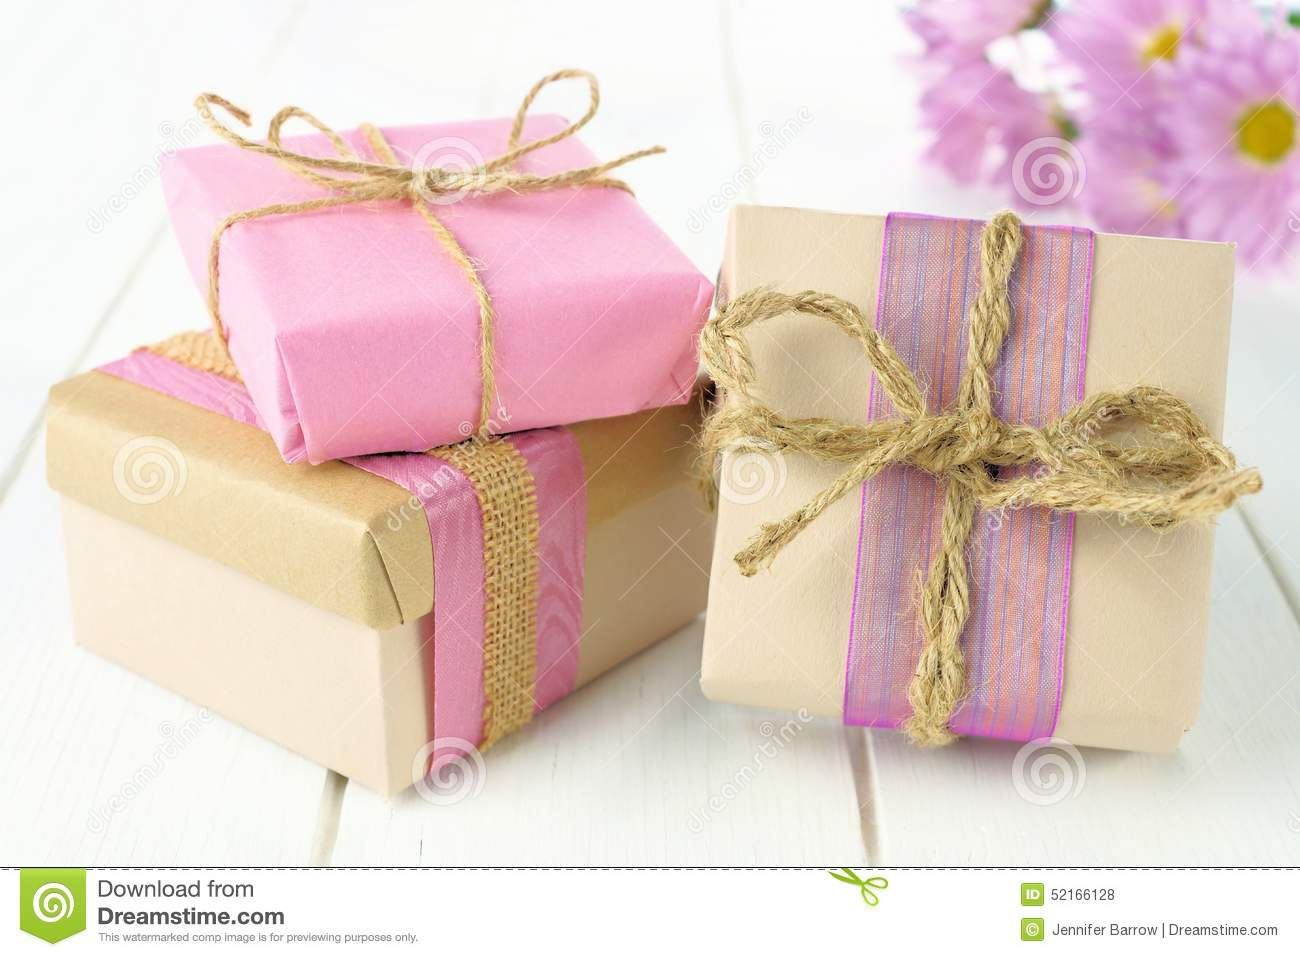 11 Sure-fire Tips to Start a Gift Wrapping Business